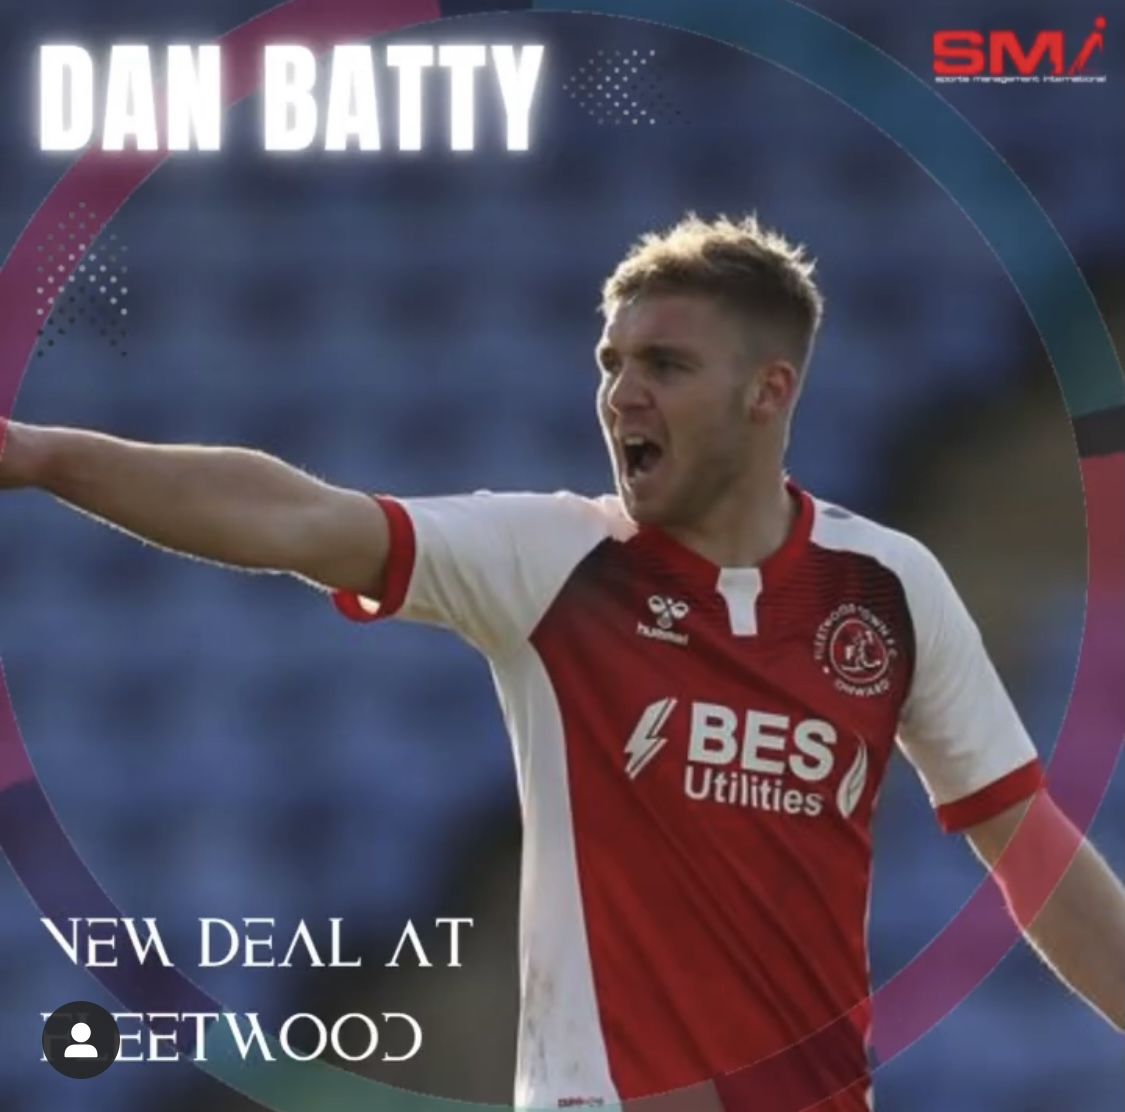 Dan Batty new contract at Fleetwood Town